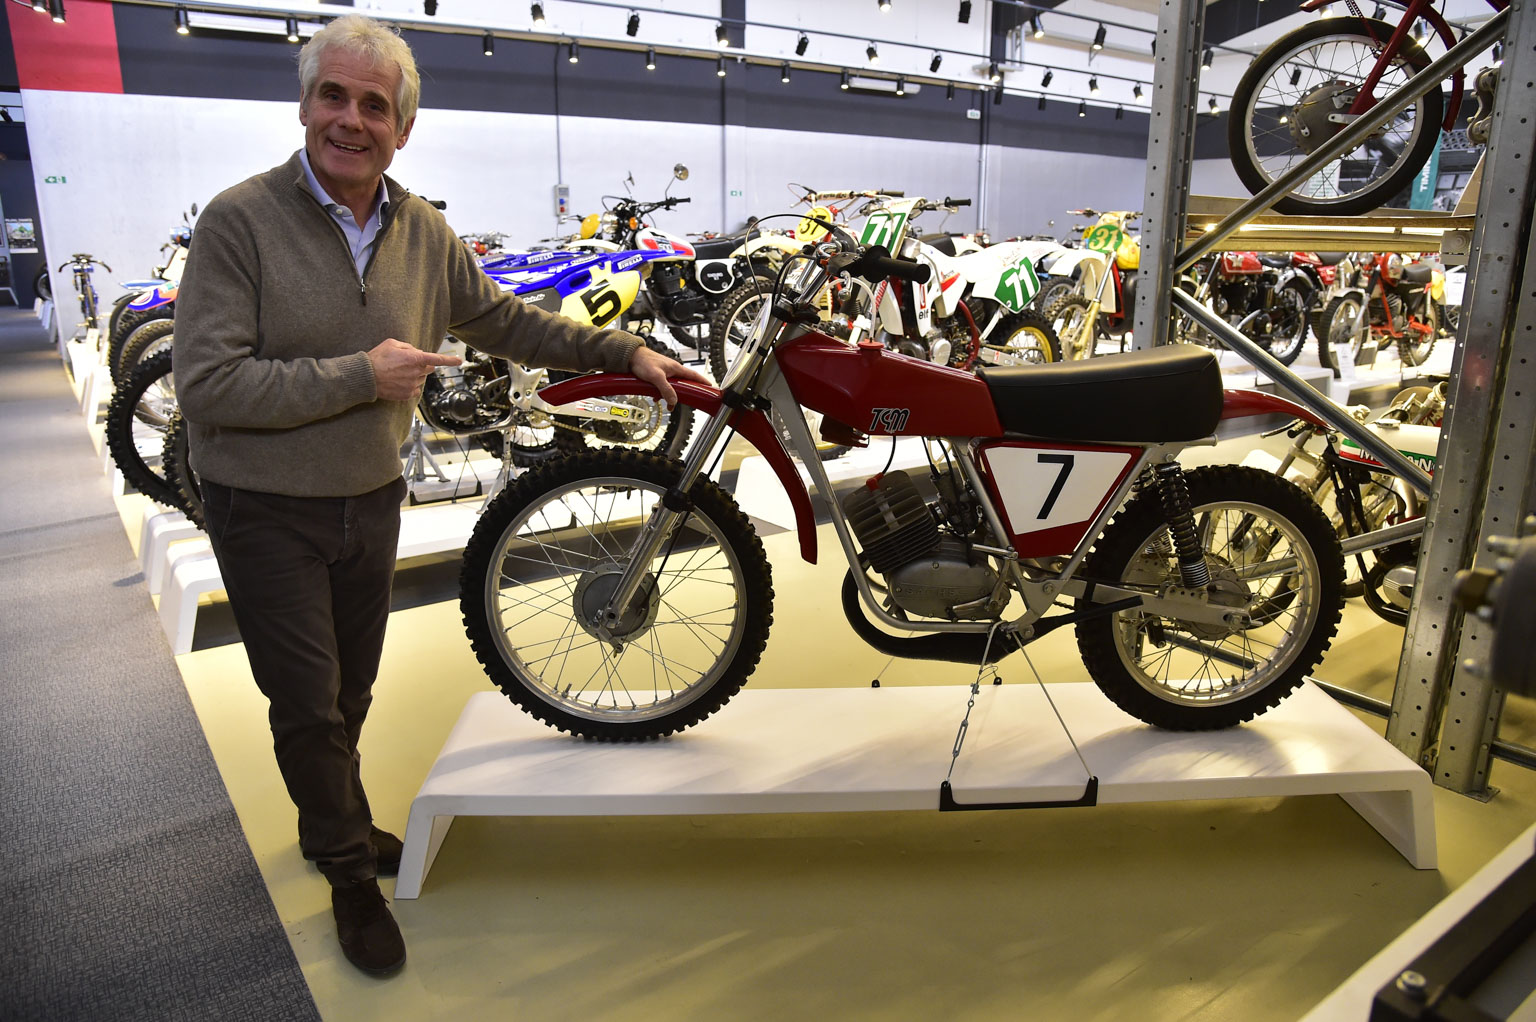 Rinaldi with one of his old bikes